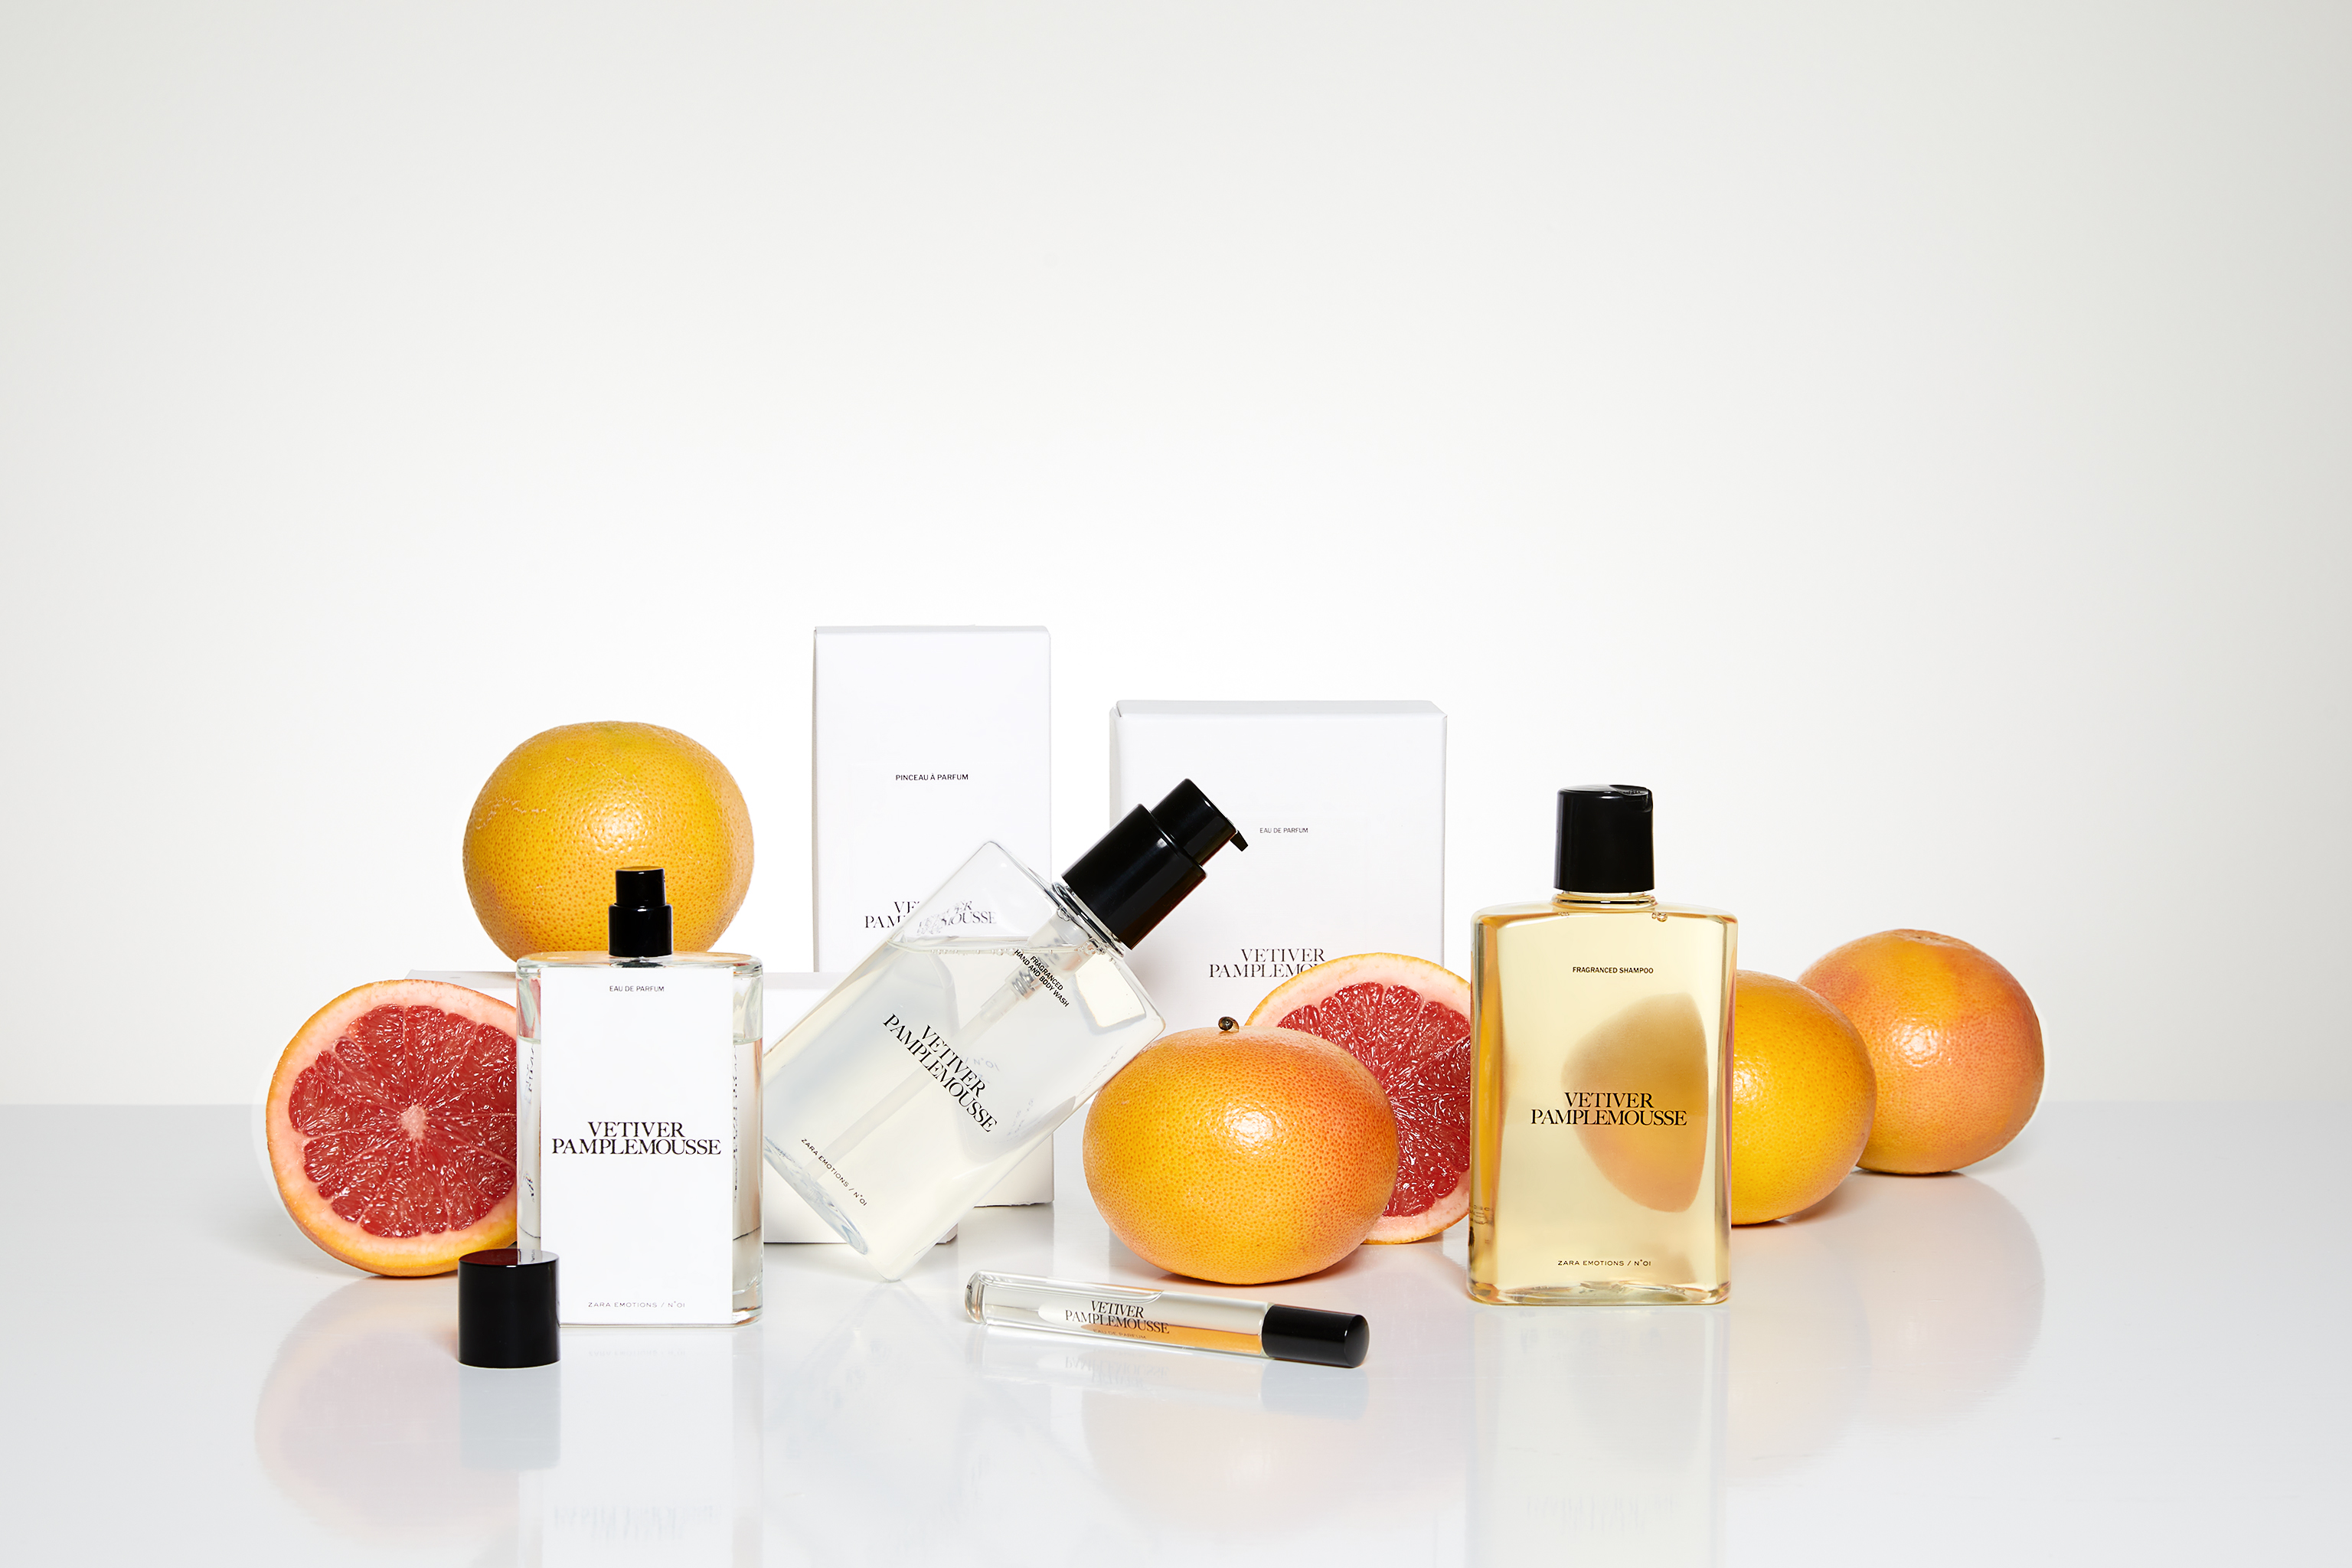 The Zara Emotions Collection by Jo Loves, created by the perfumer Jo Malone.